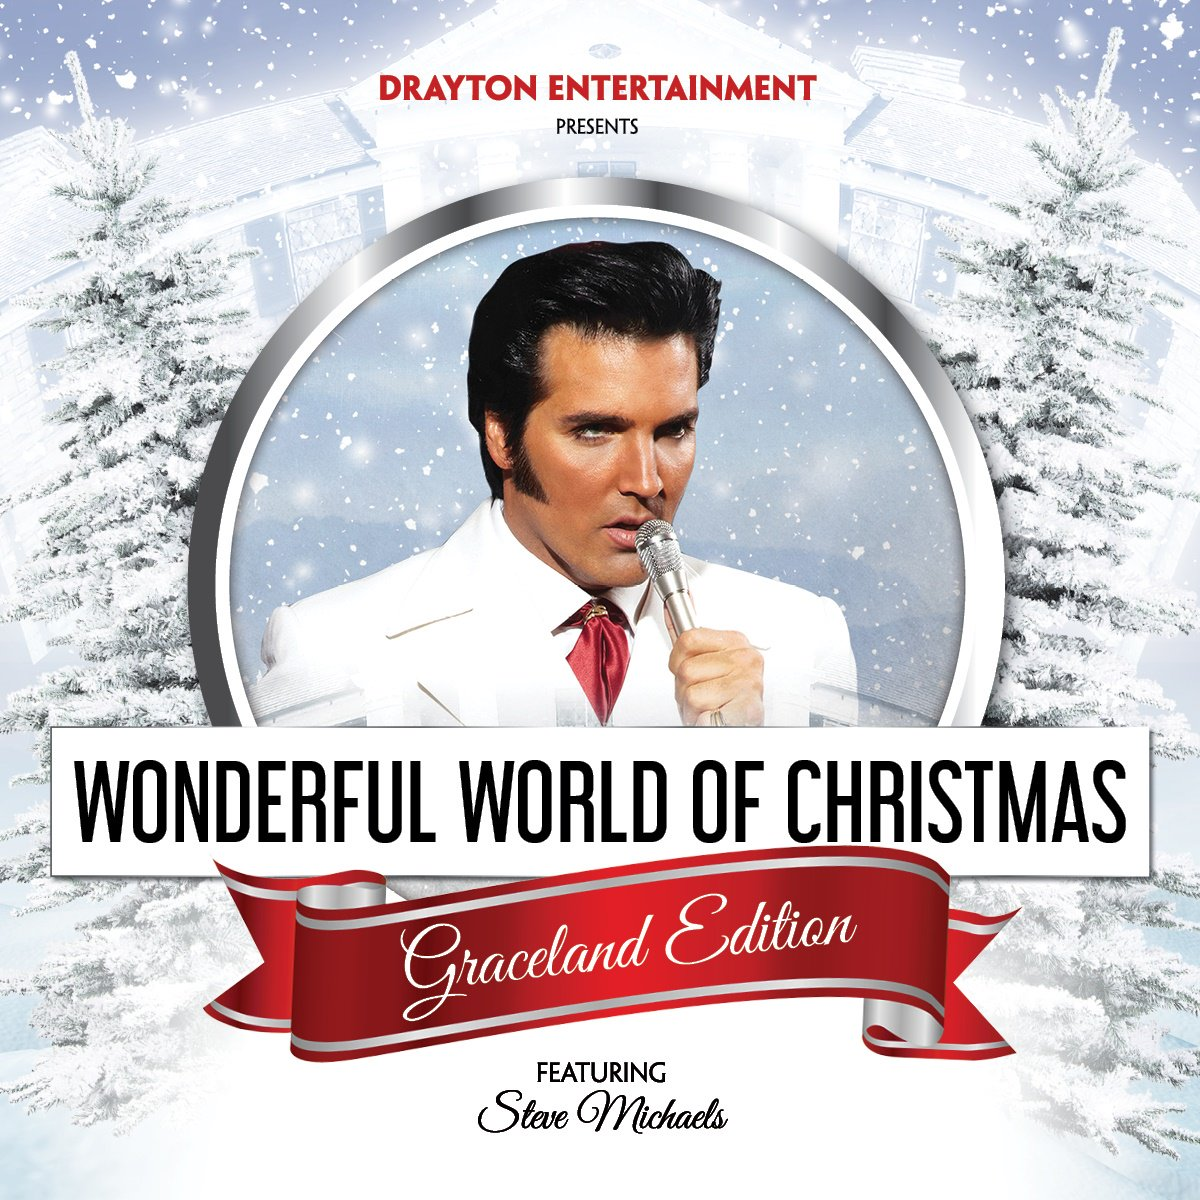 Wonderful World of Christmas: Graceland Edition at Dunfield Theatre ***SOLD OUT***